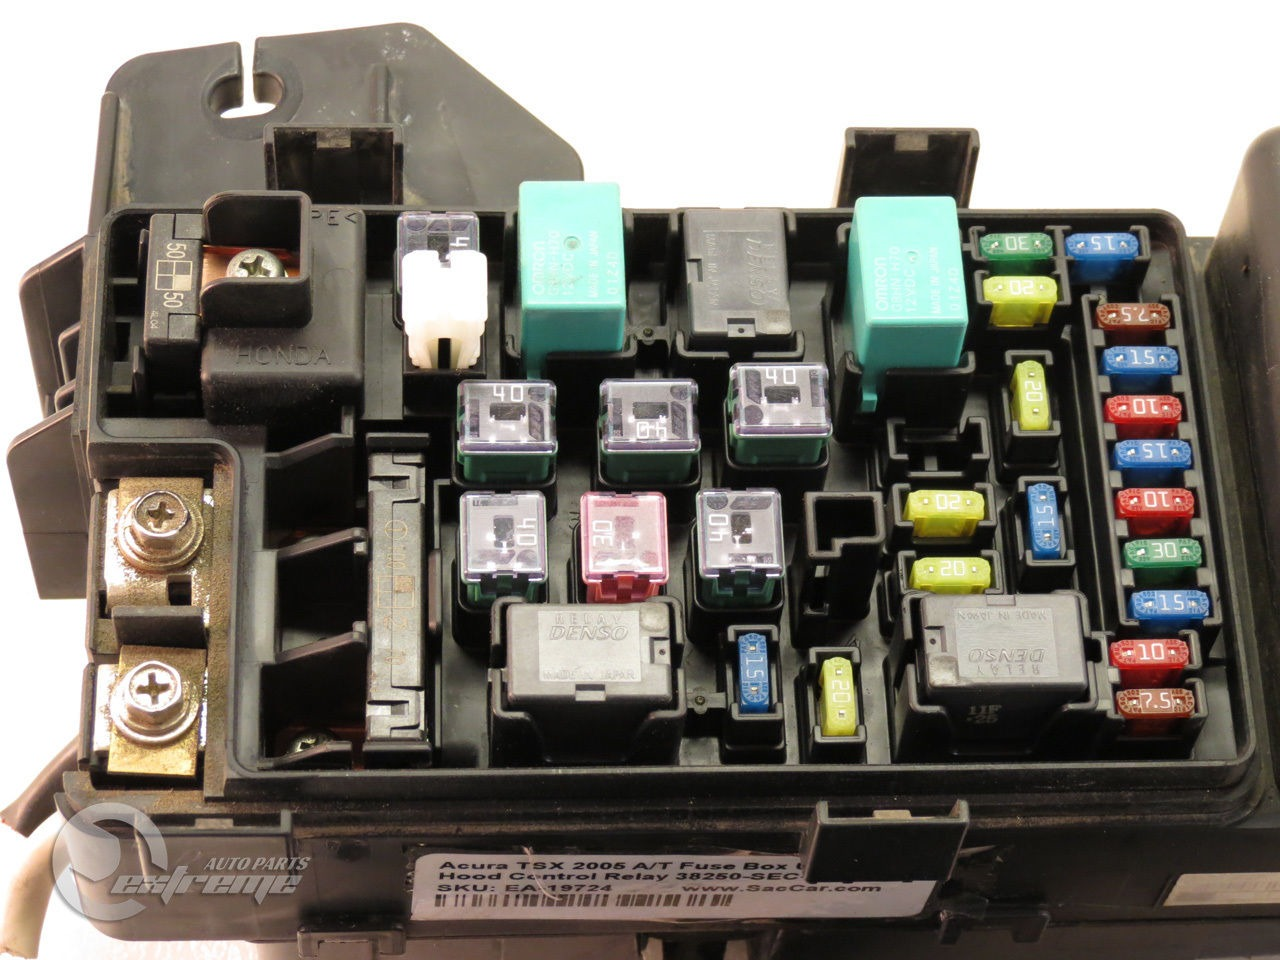 38250 sec a02 acura tsx 2005 a t fuse box under hood control relay 38250 sec a02 2 acura tsx 2005 a t fuse box under hood control relay 38250 sec a02 acura tsx fuse box at creativeand.co